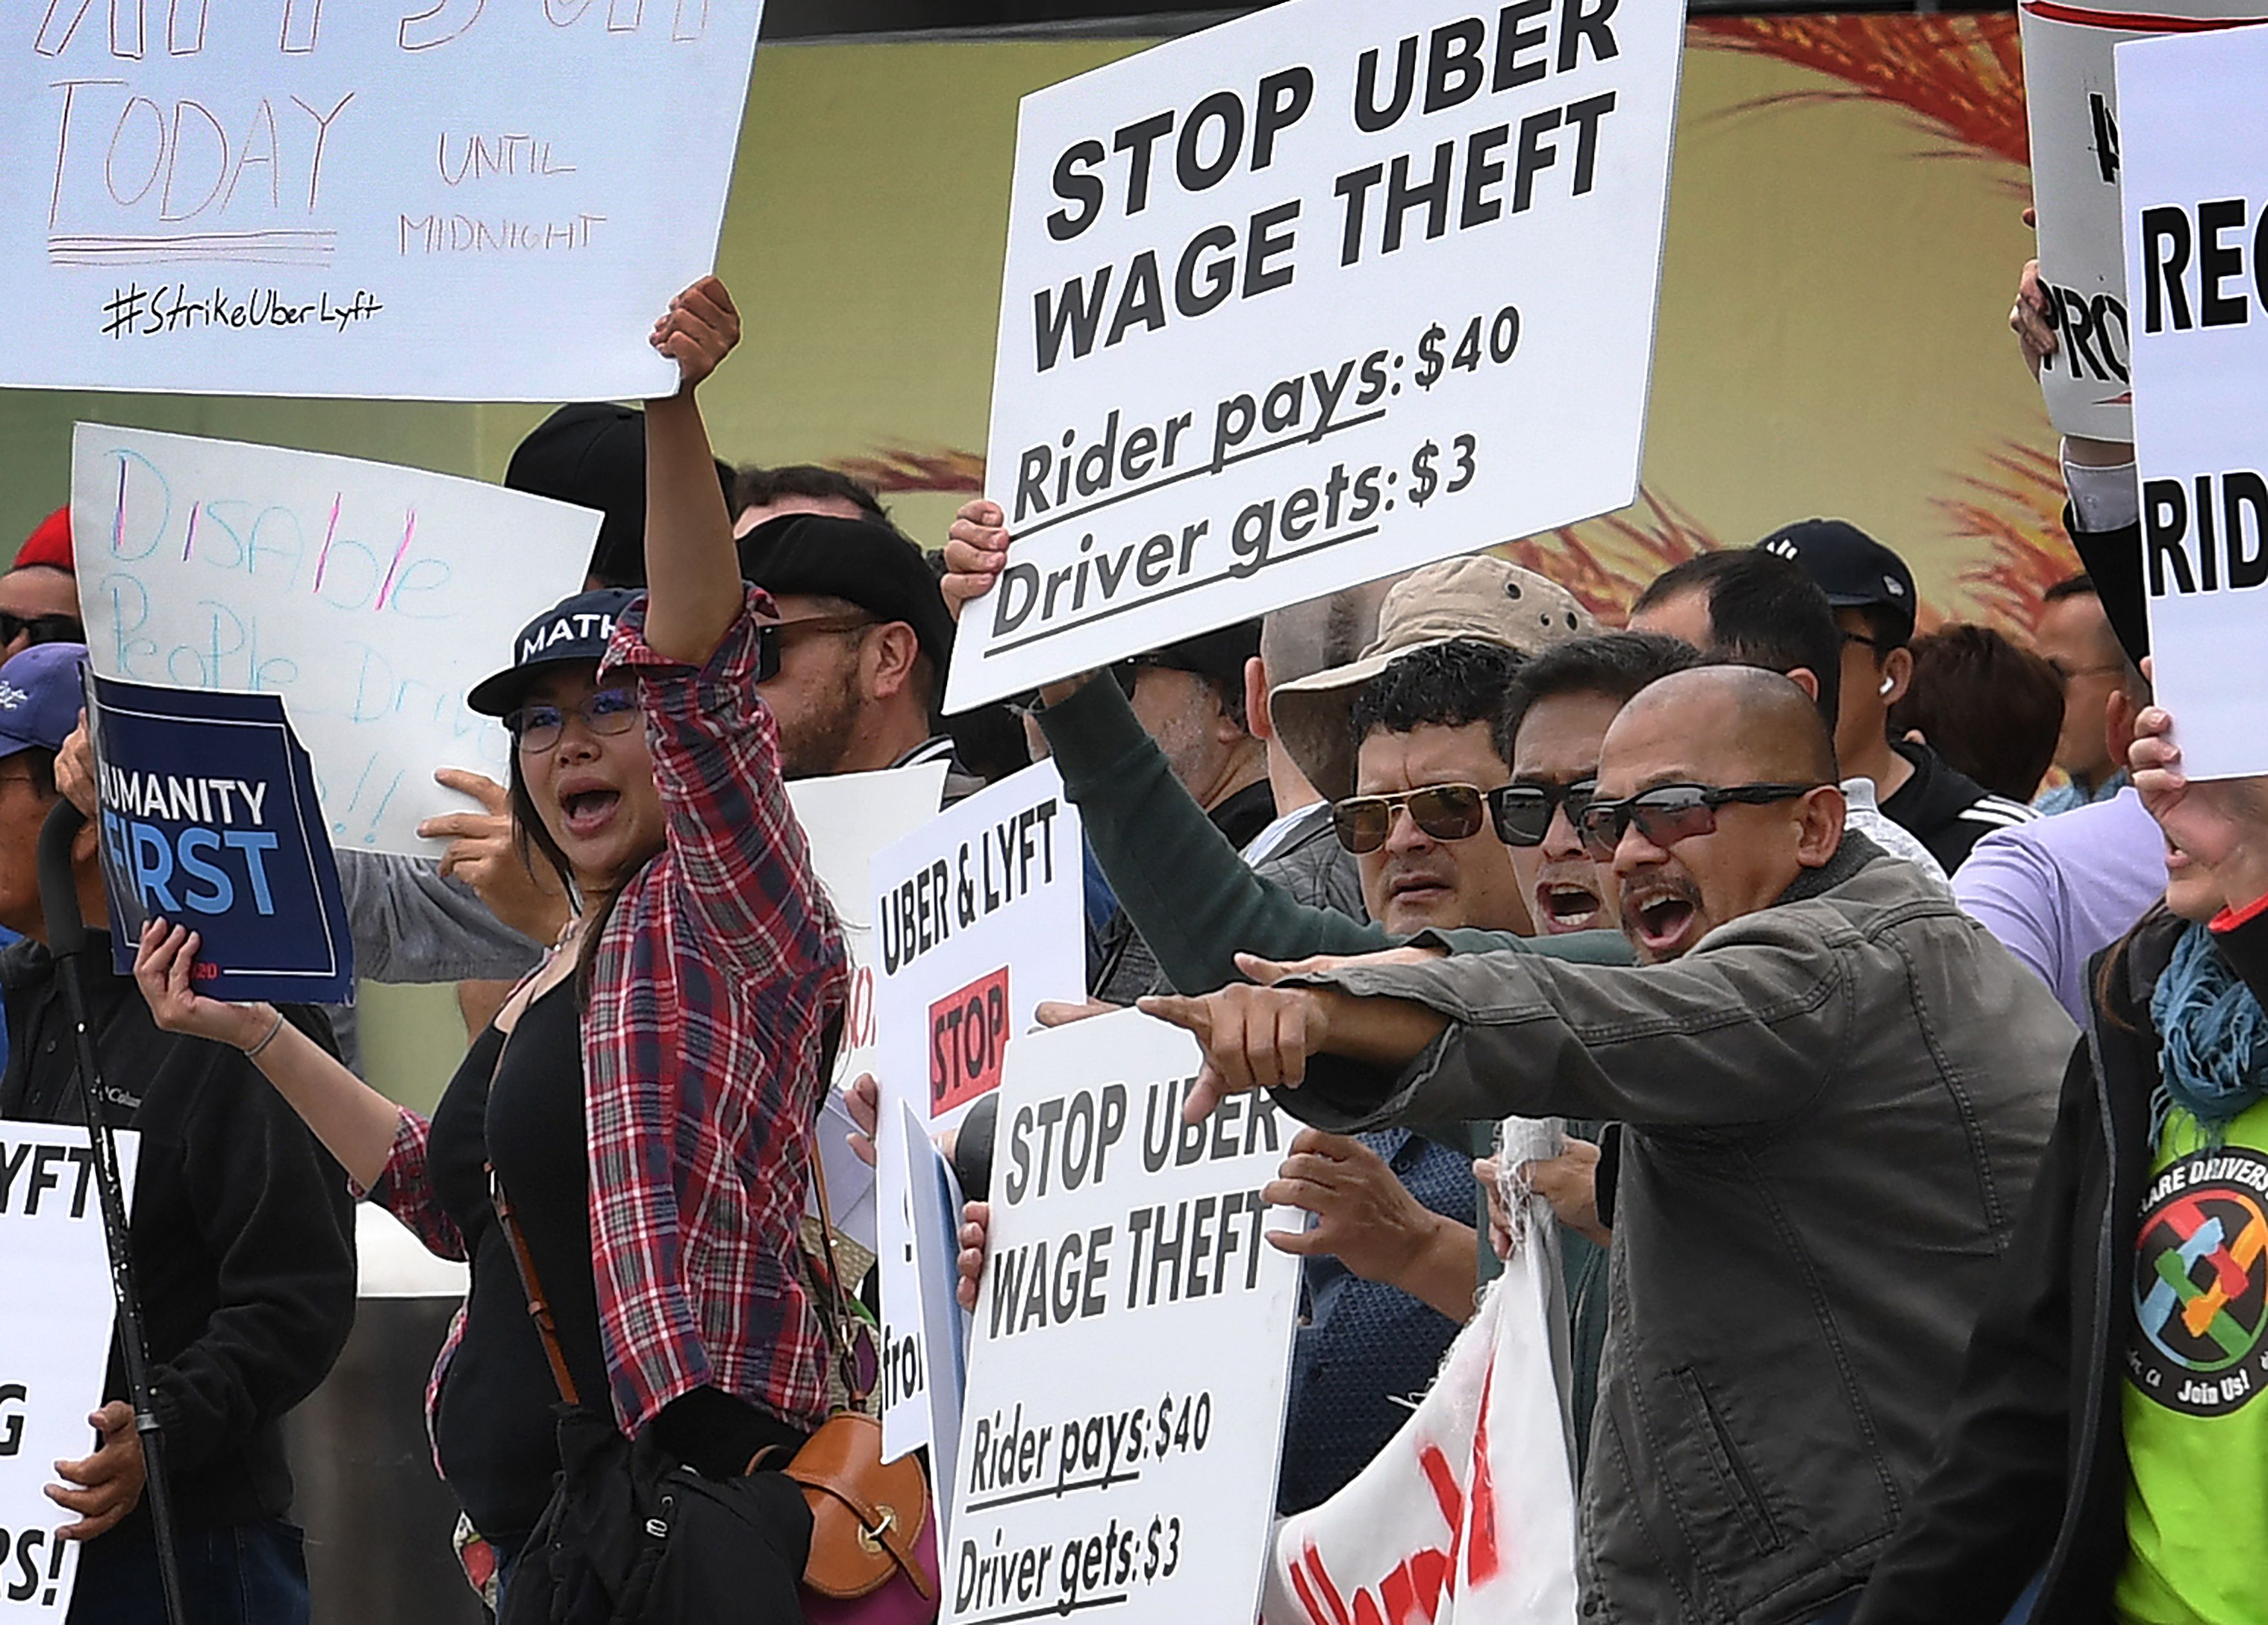 California AB 5 bill: Uber and Lyft launch campaign to